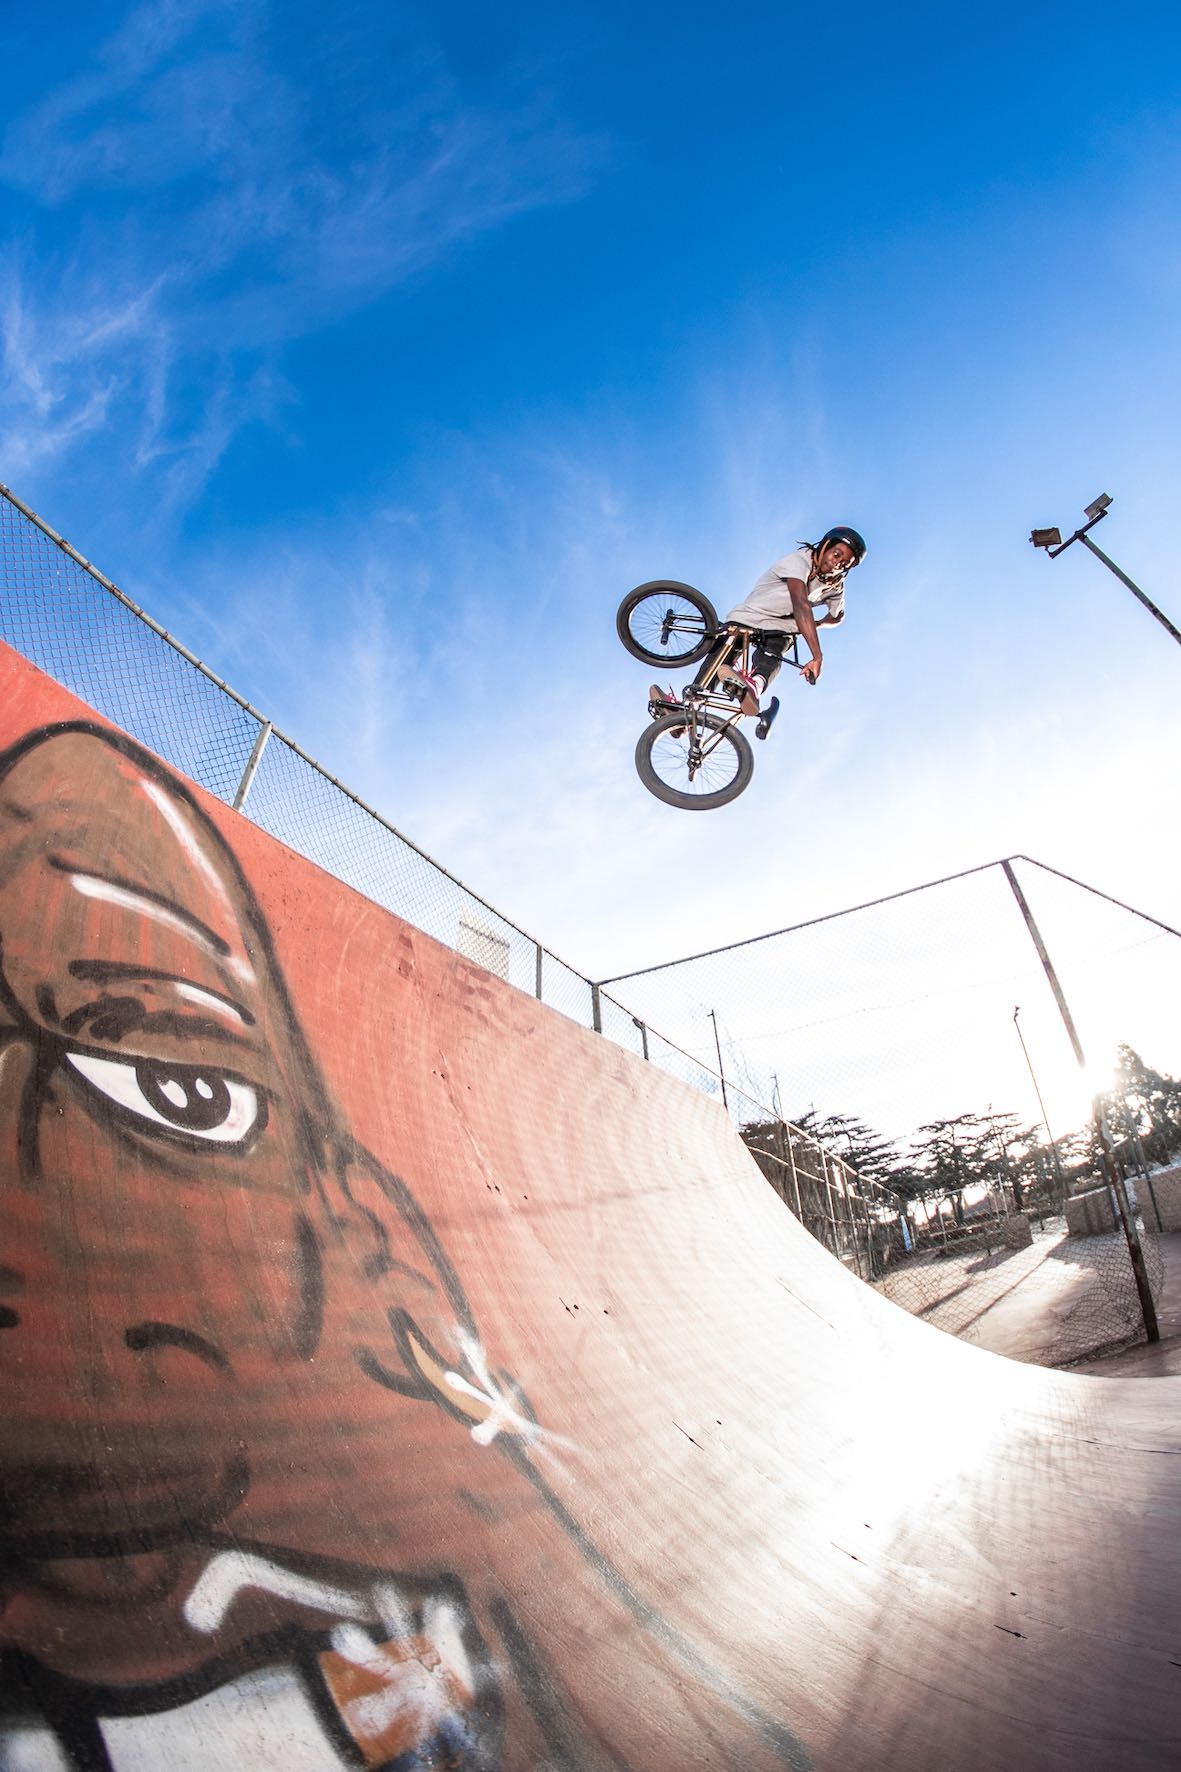 BMX video feature with Nathi Steeze